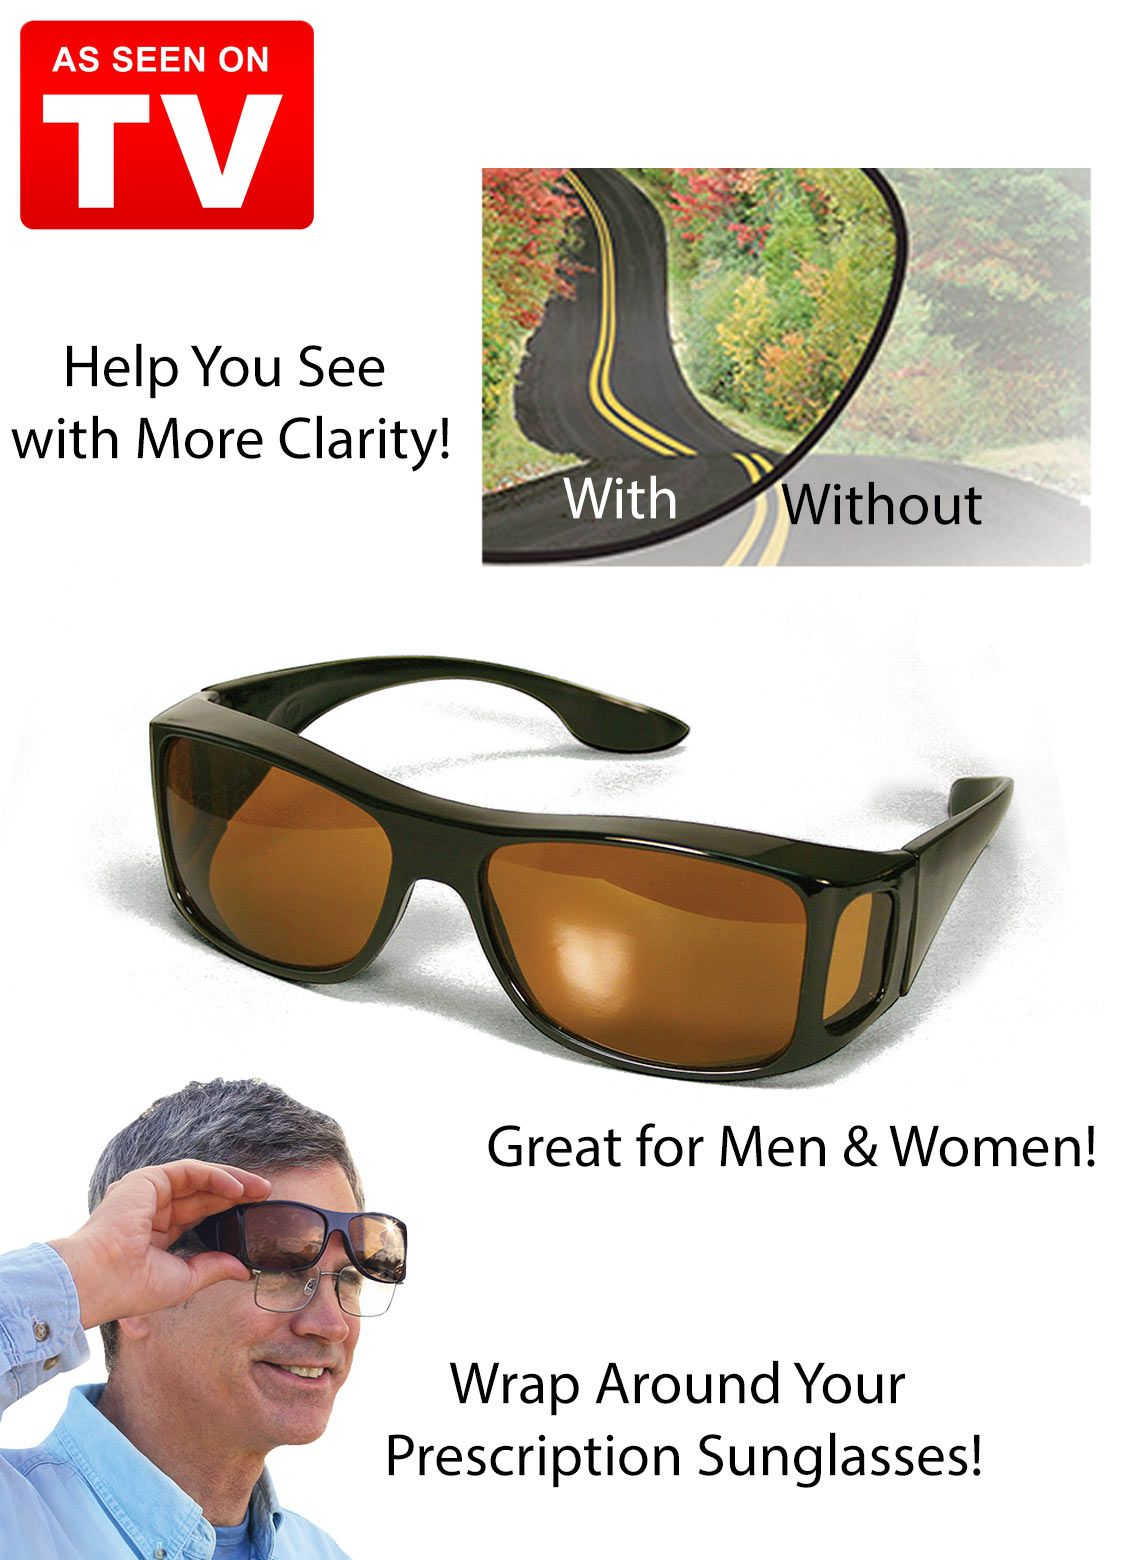 f56169d8b7 HD Vision WrapArounds Glasses - As Seen on TV  9.99 05 30 2015